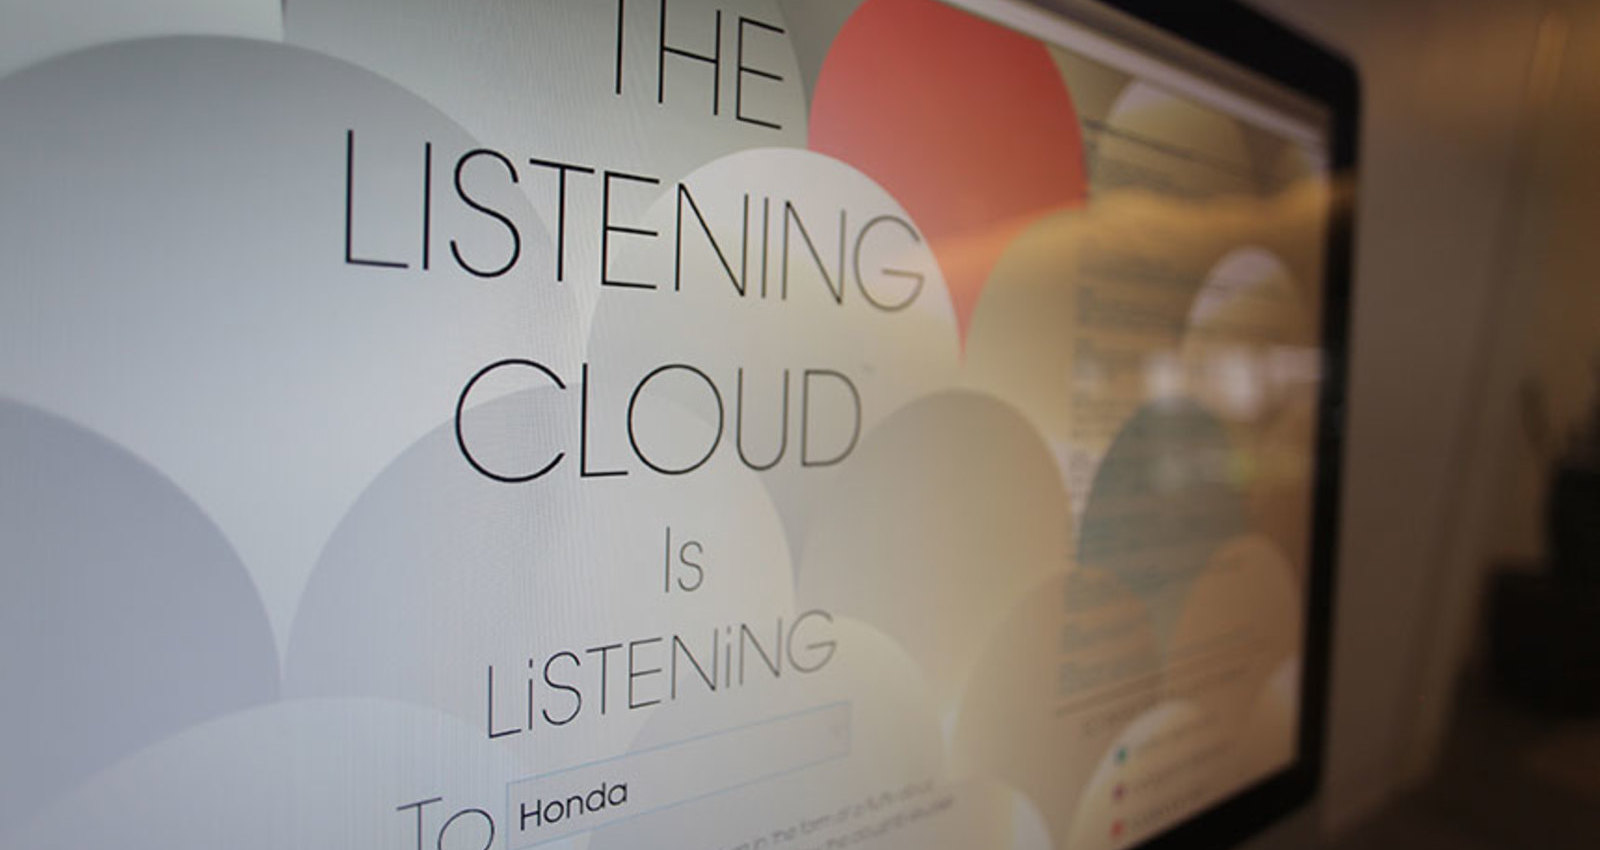 The Listening Cloud